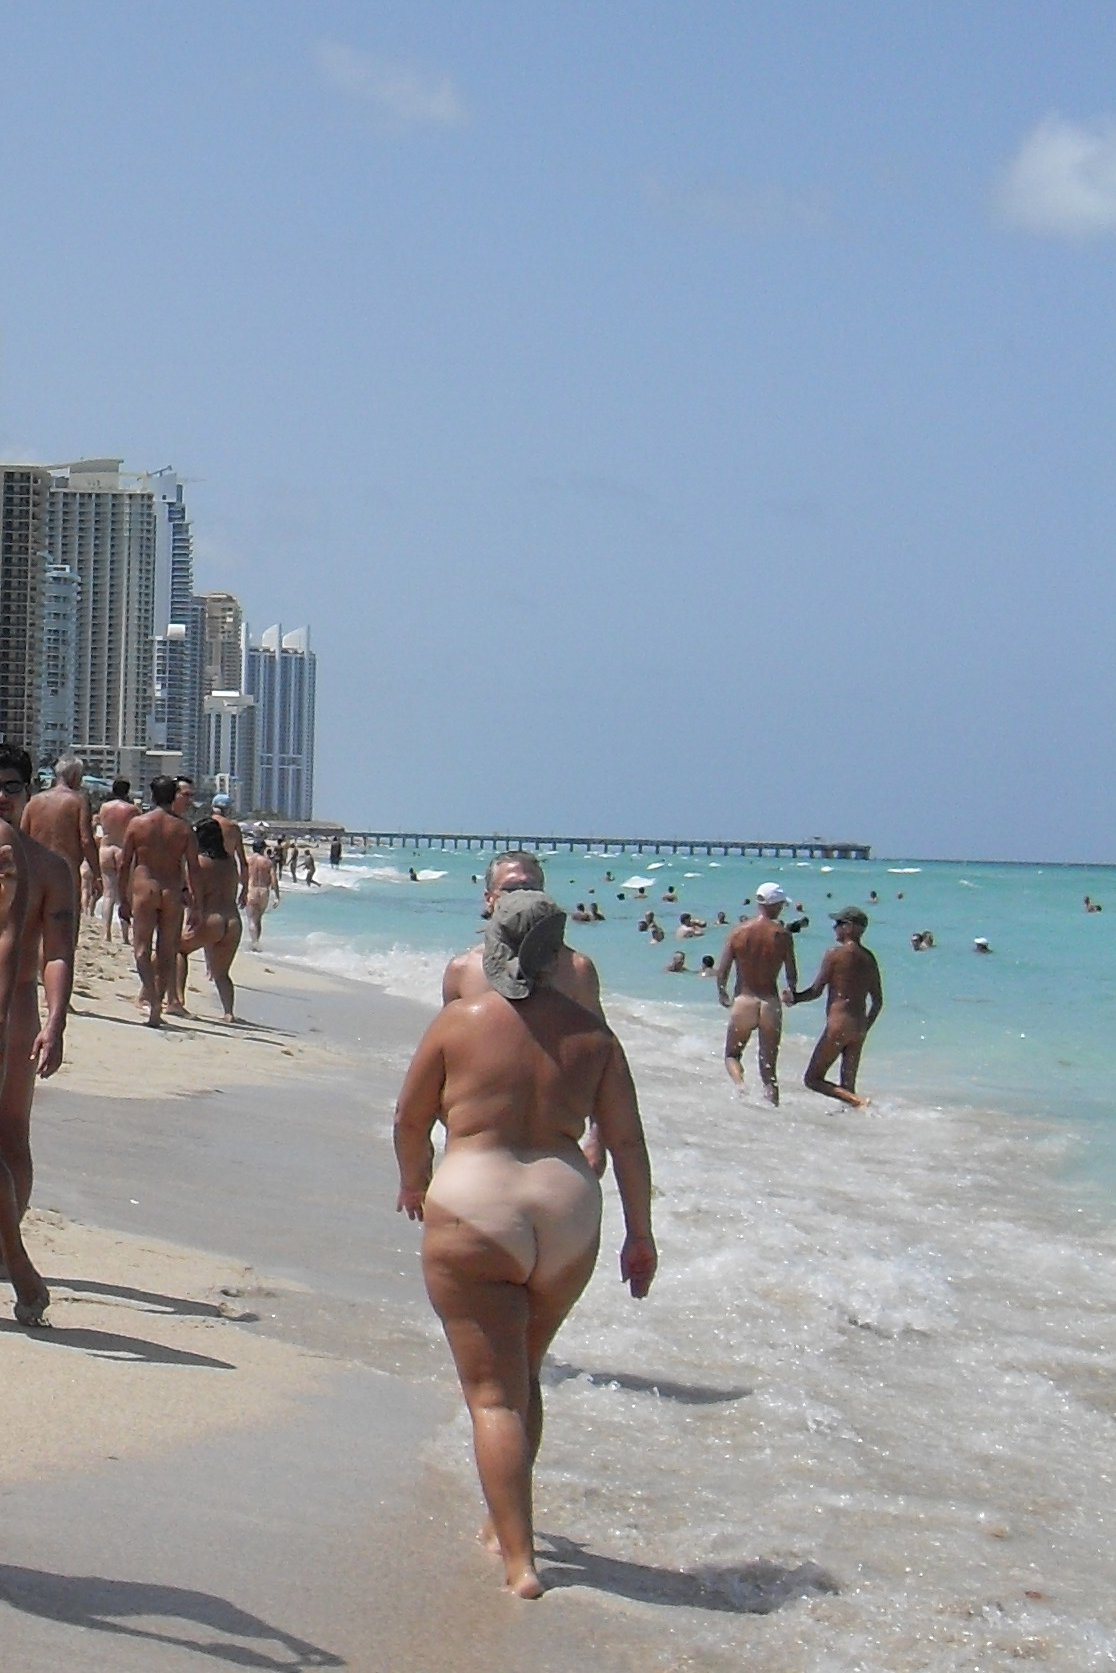 Description Haulover-beach-nude-bathers.JPG